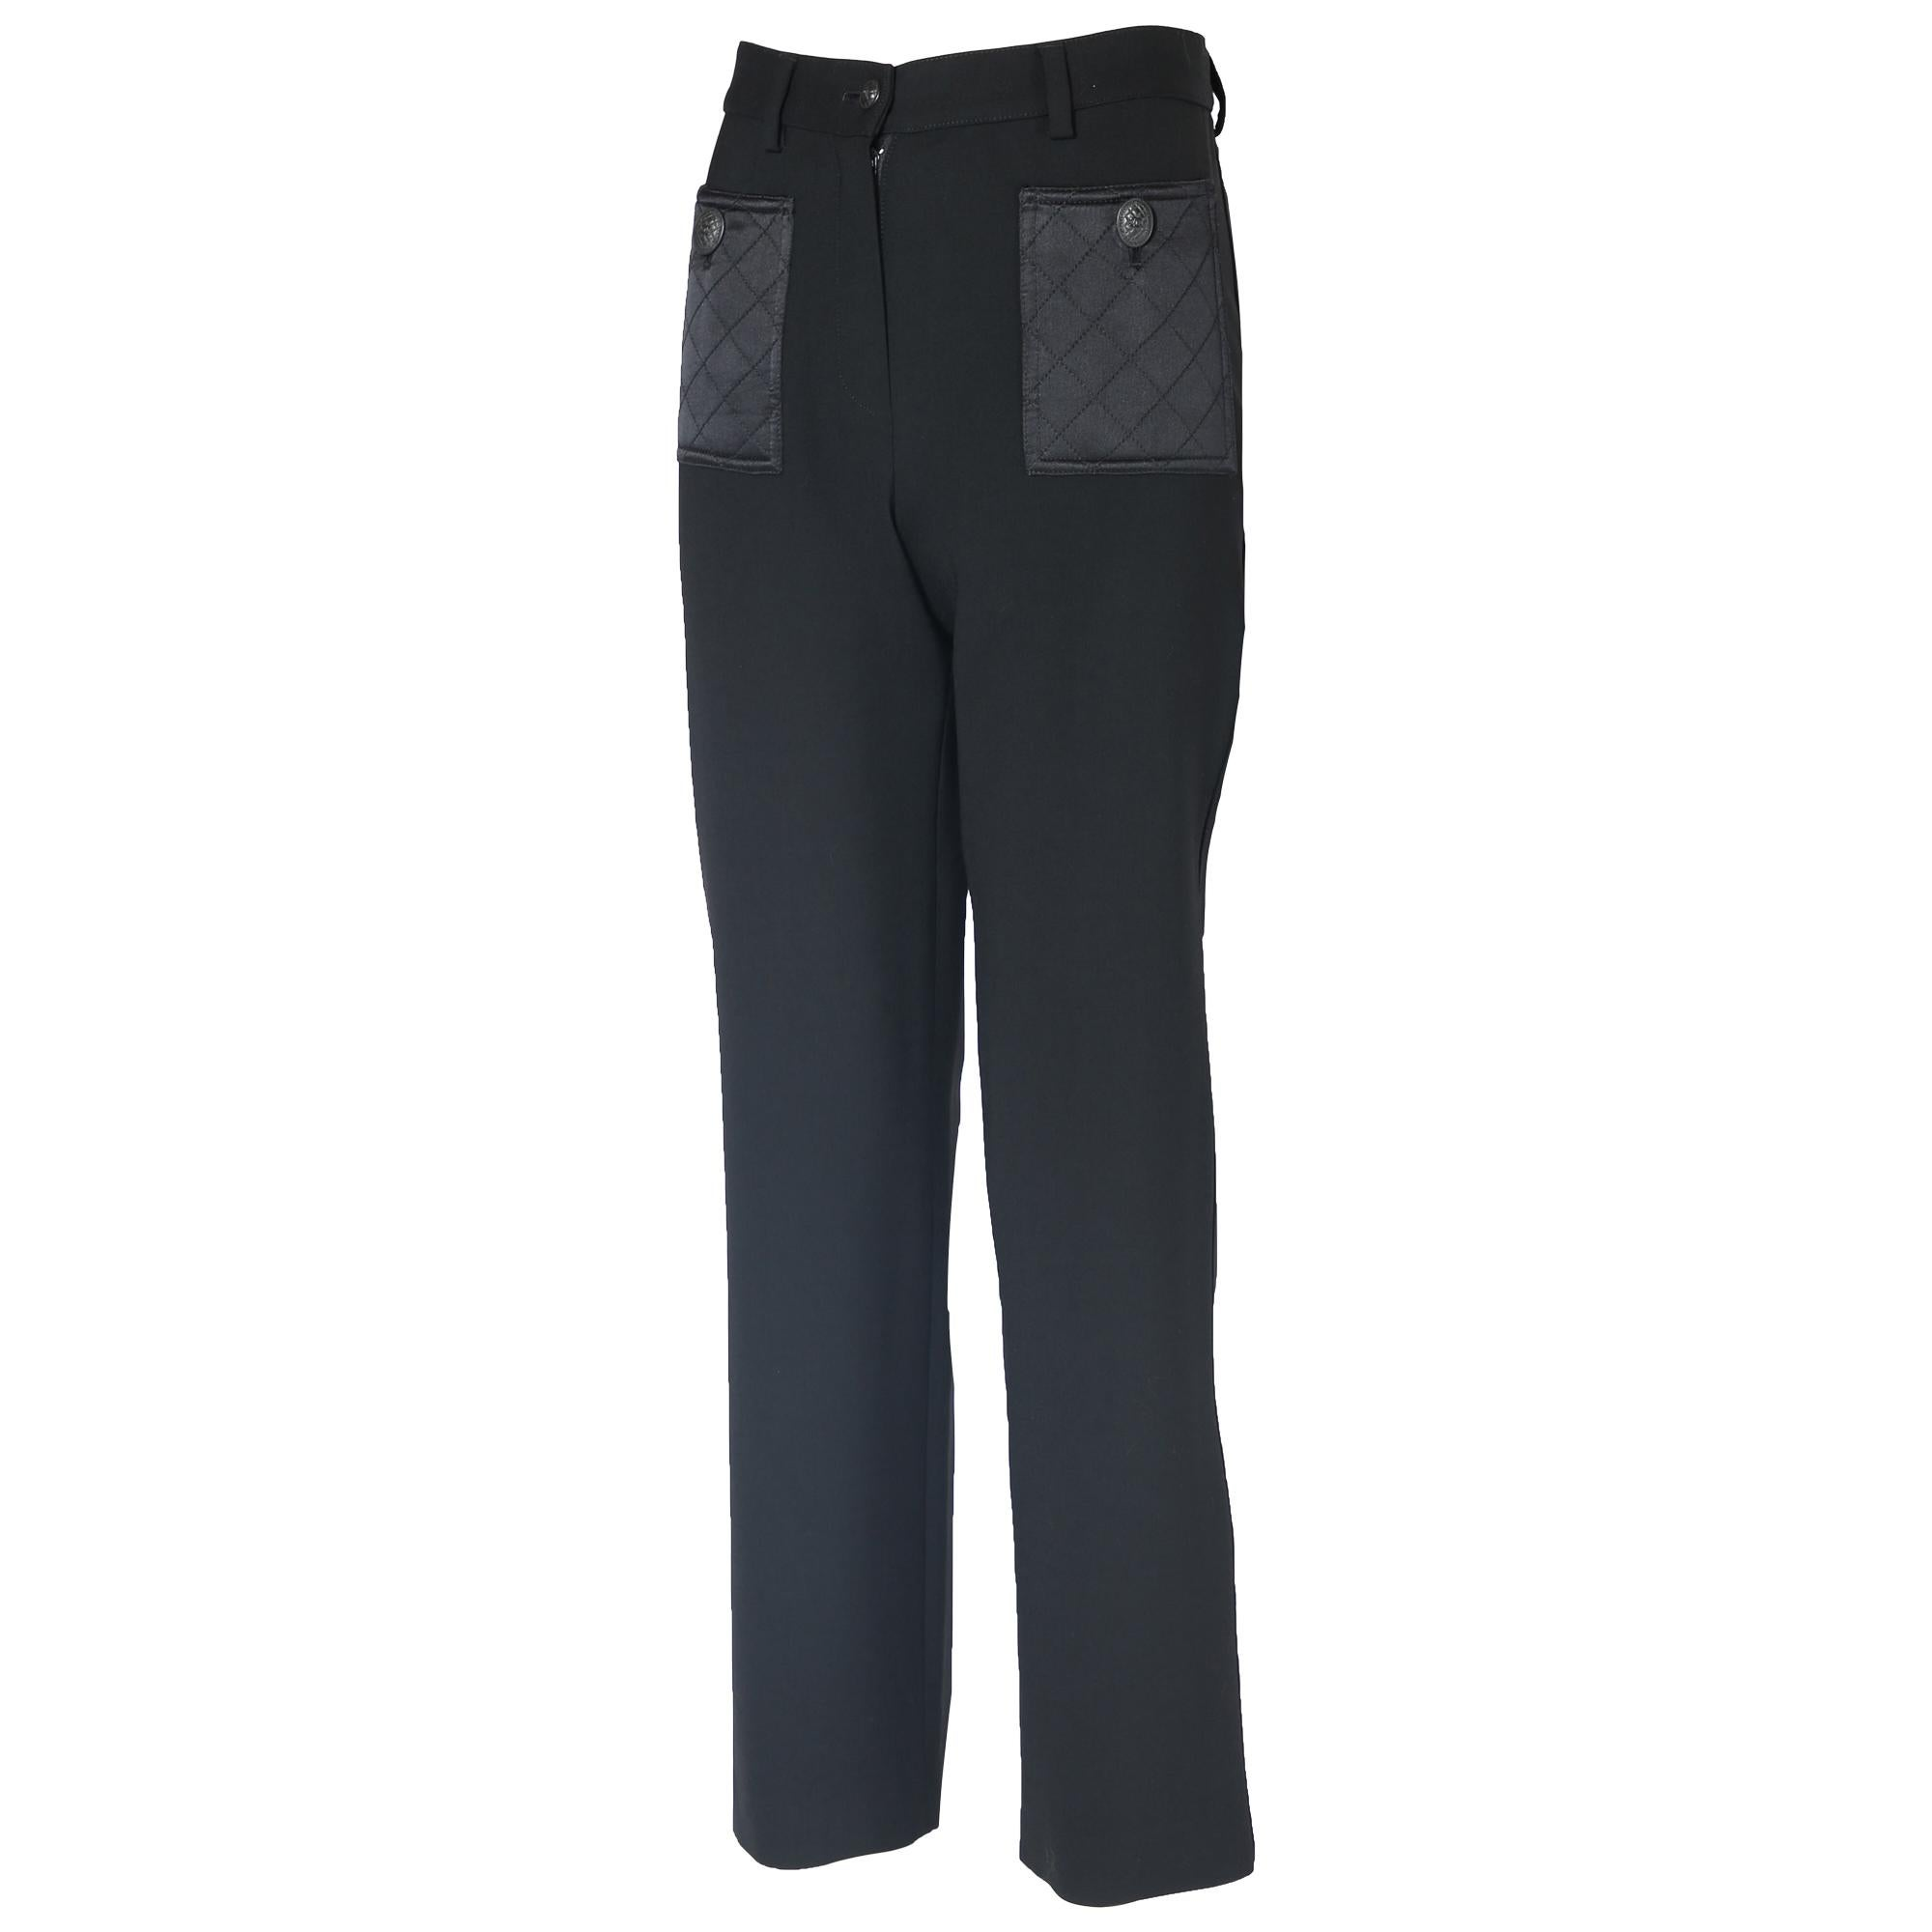 2004 A/H Chanel Black Wool Stretch Pants w/Quilted Satin Hip Pockets